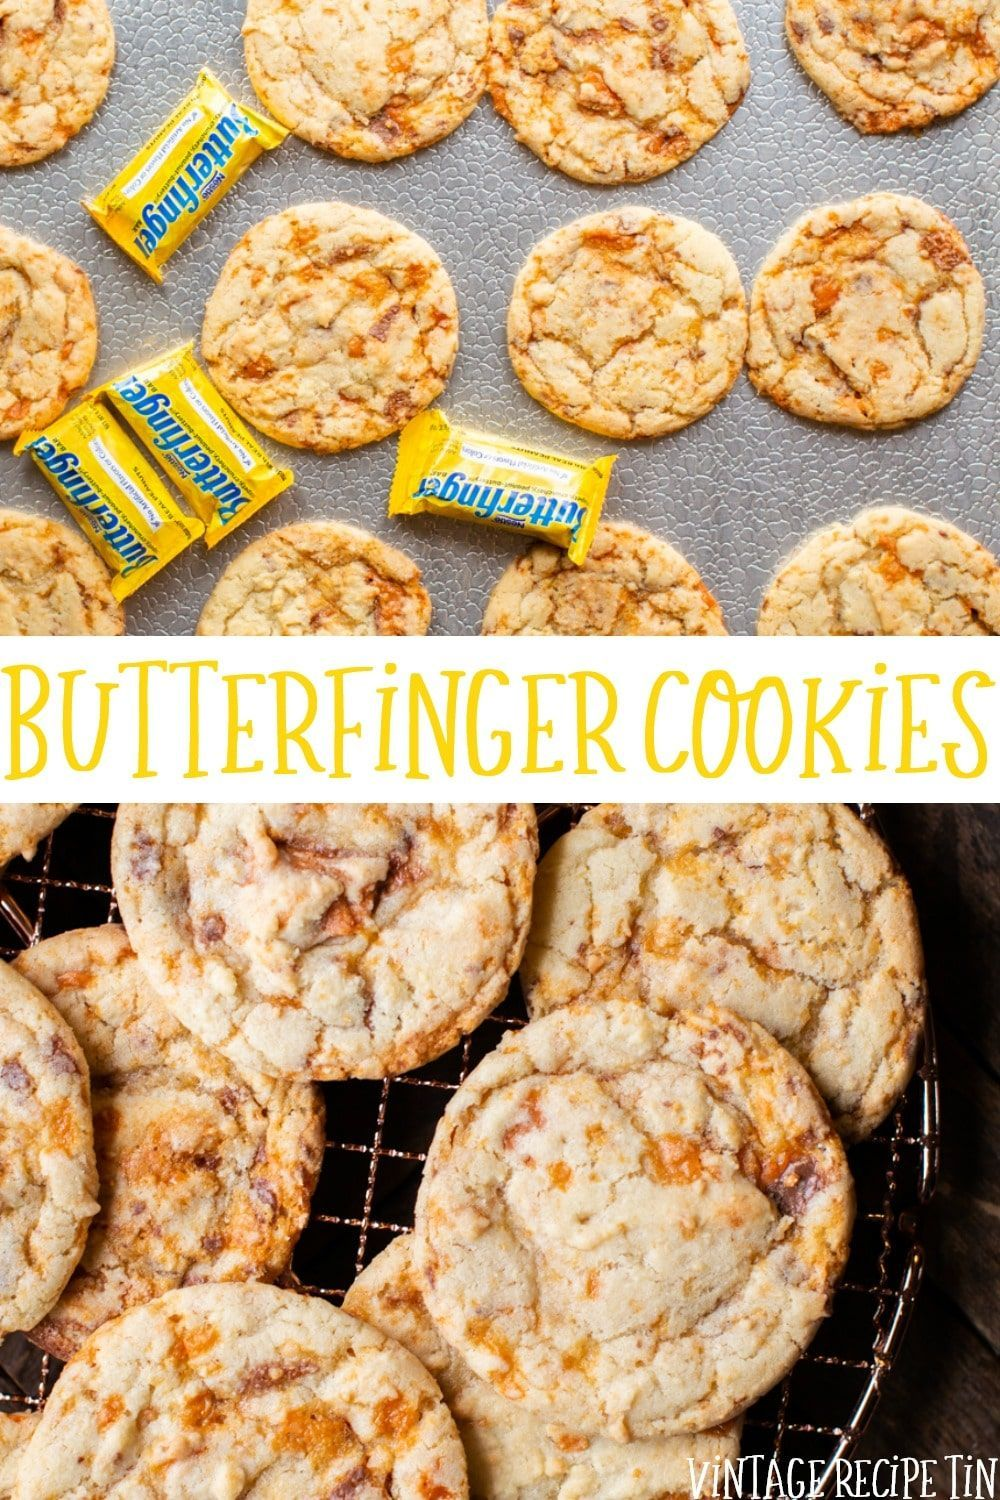 Butterfinger cookies are sugar cookies with chopped up butterfingers. You won't regret making these! - Vintage Recipe Tin